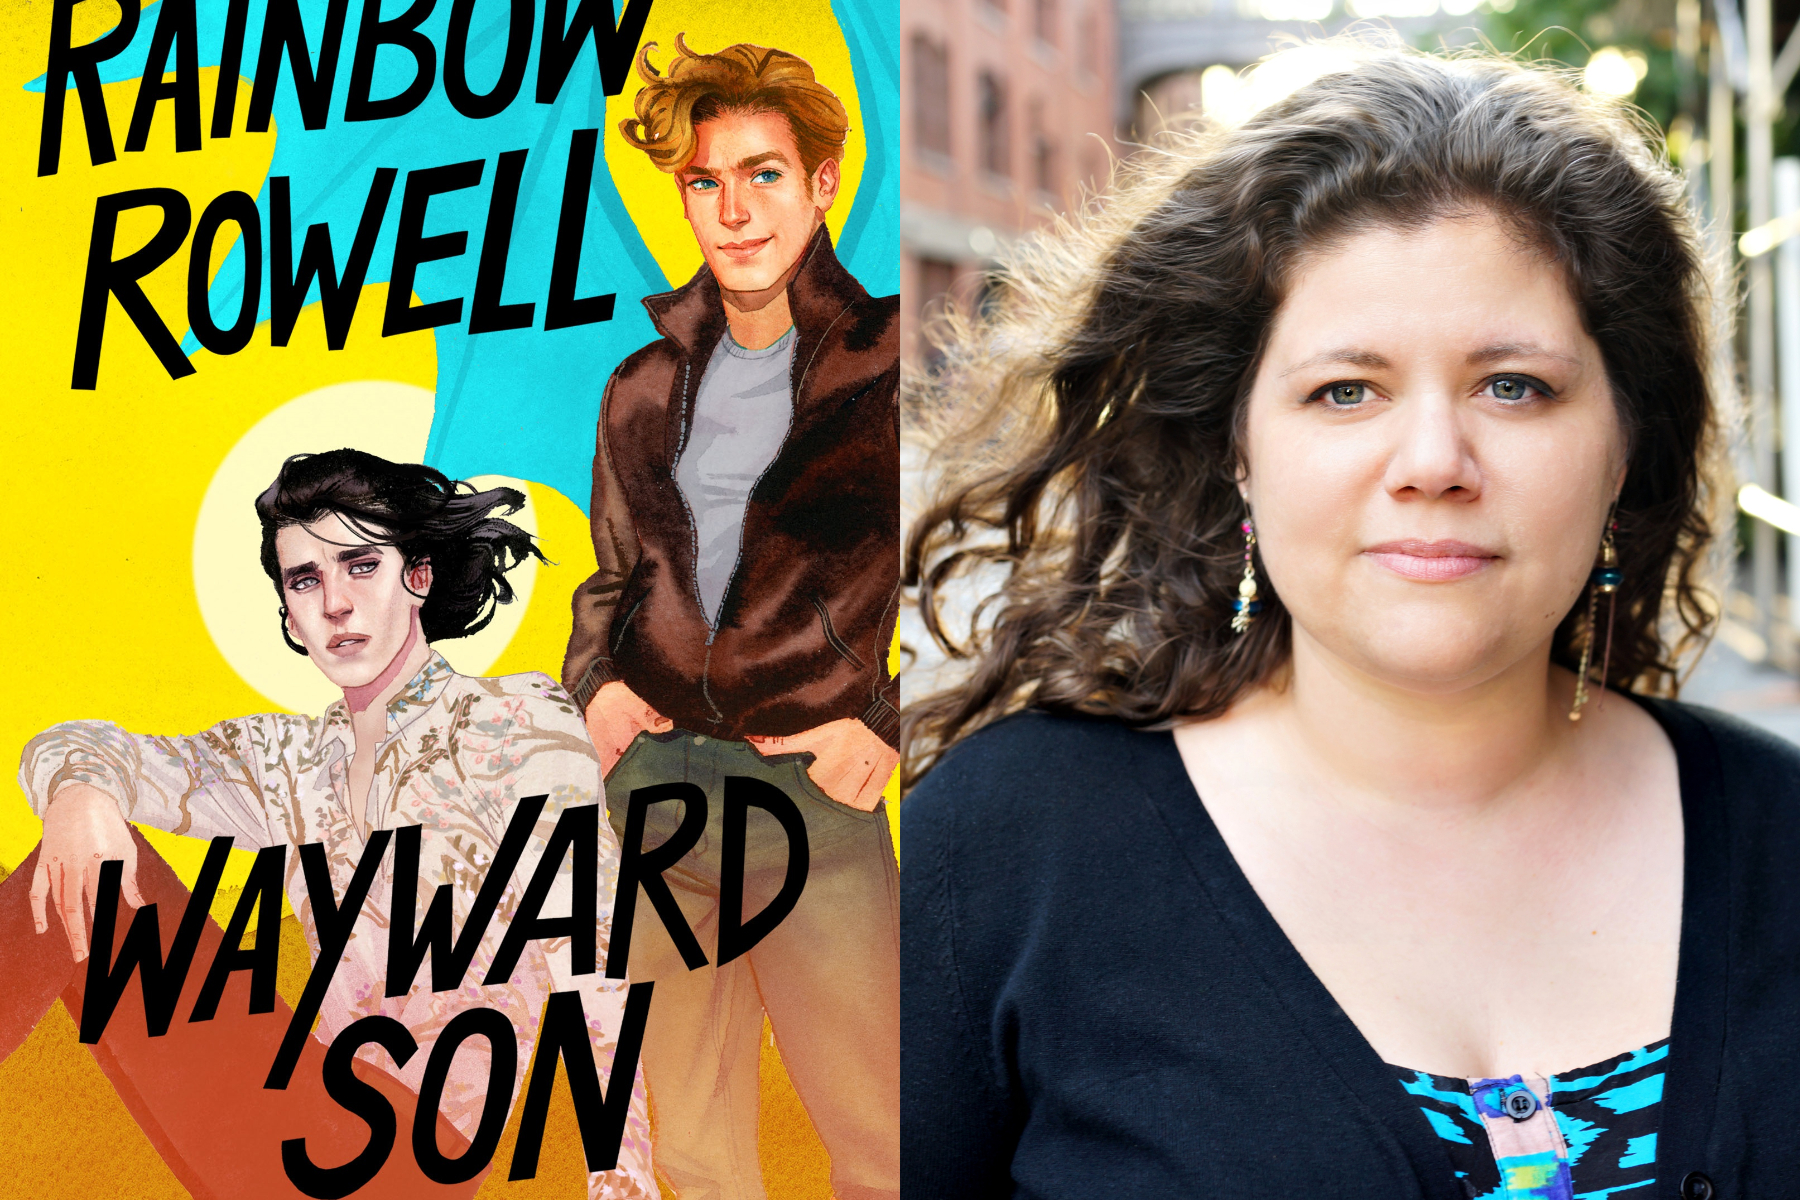 Rainbow Rowell's Carry On deconstructed Harry Potter. Wayward Son is what comes next.